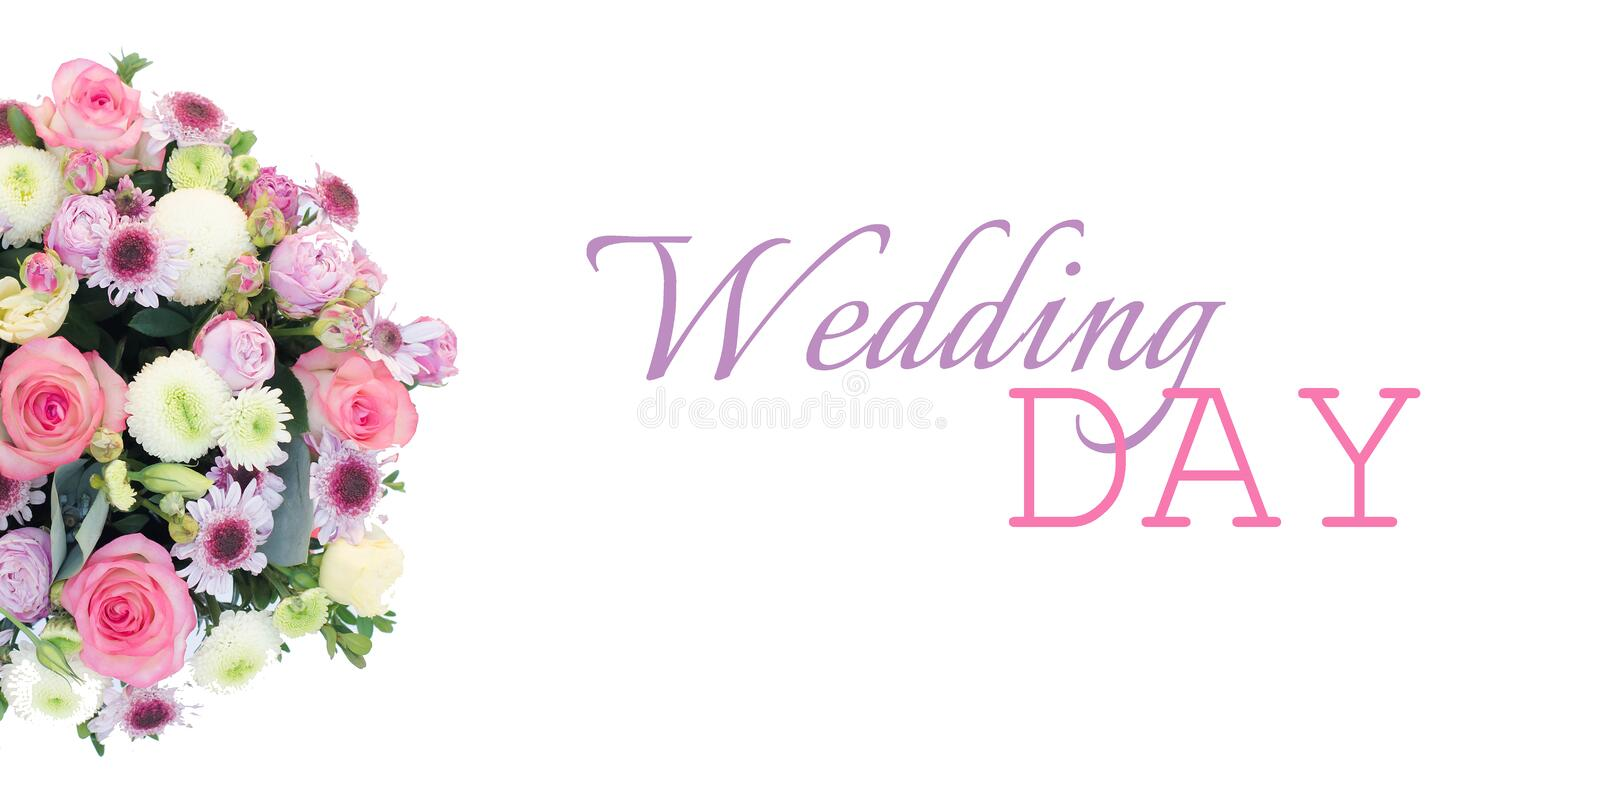 Wedding banner for a website or facebook with a flower arrangement royalty free stock images